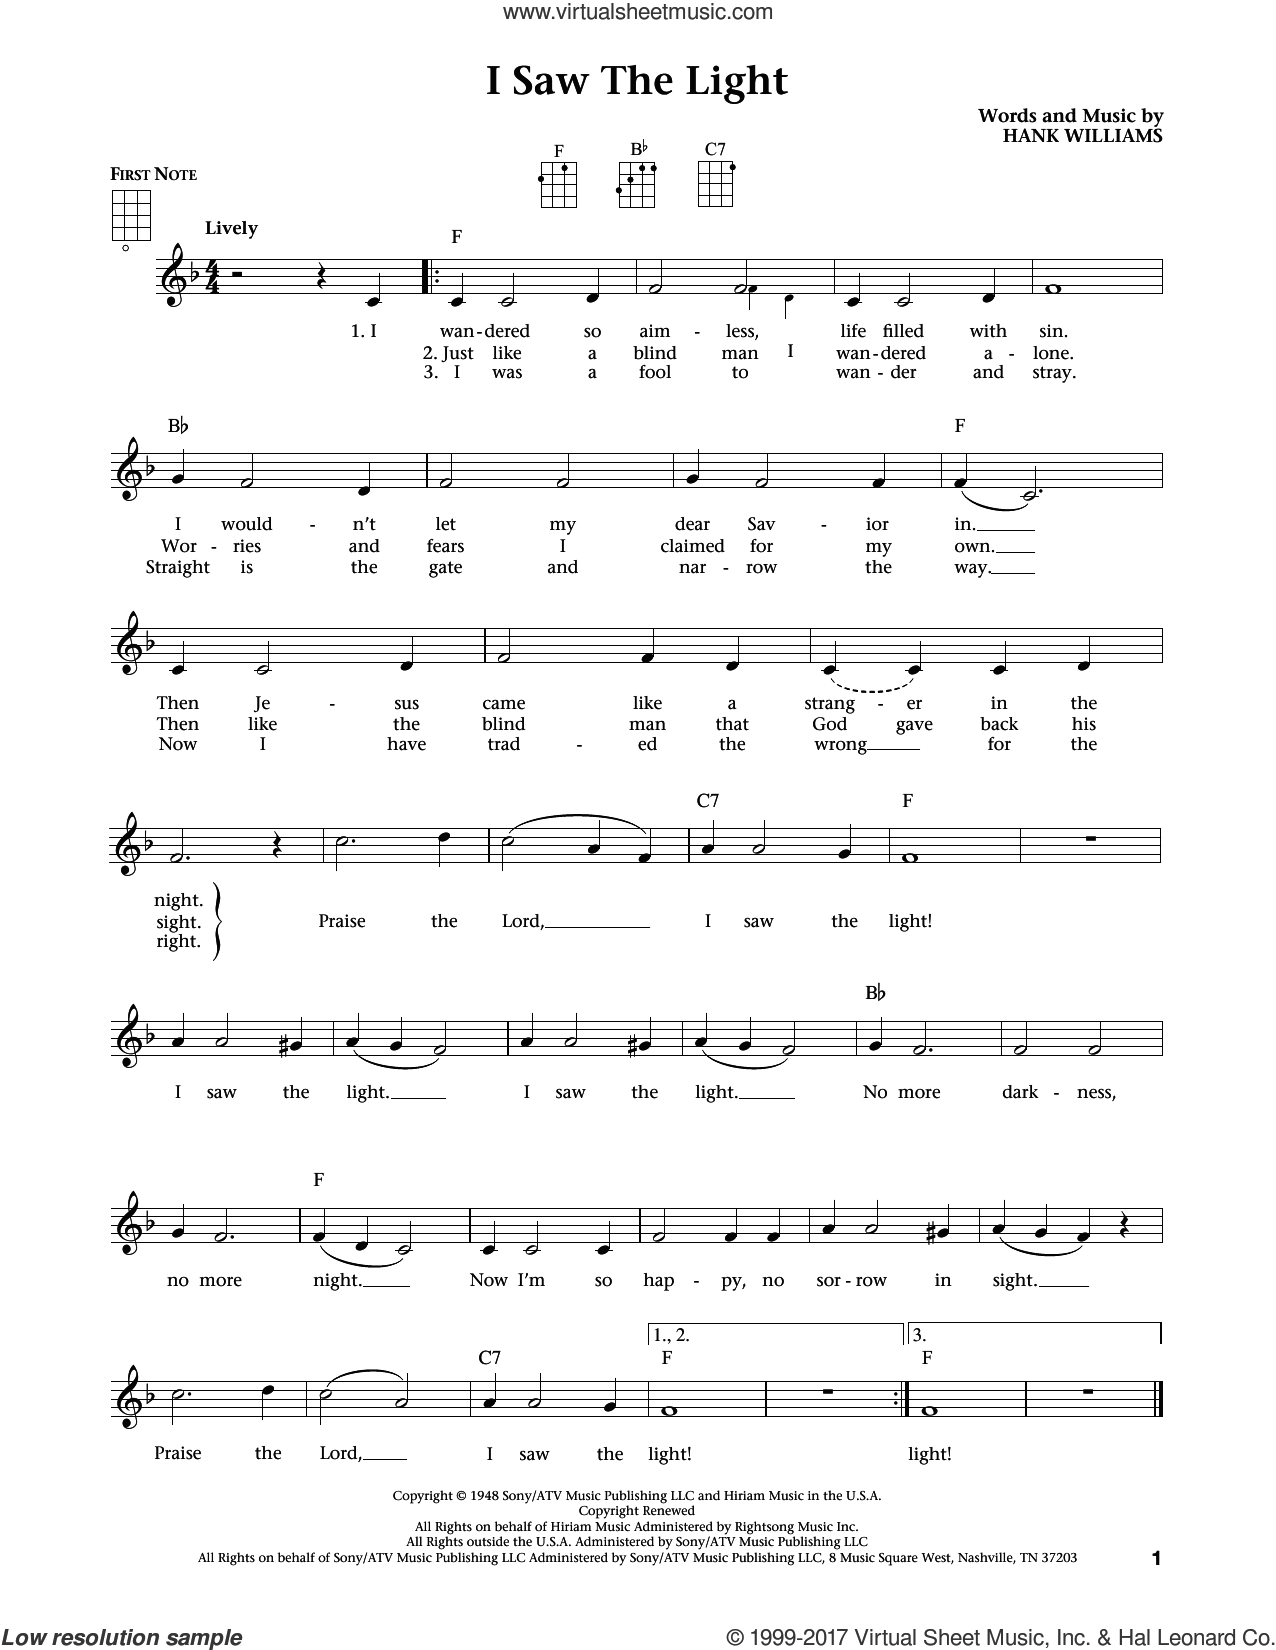 I Saw The Light (from The Daily Ukulele) (arr. Liz and Jim Beloff) sheet music for ukulele by Hank Williams, Jim Beloff and Liz Beloff, intermediate skill level